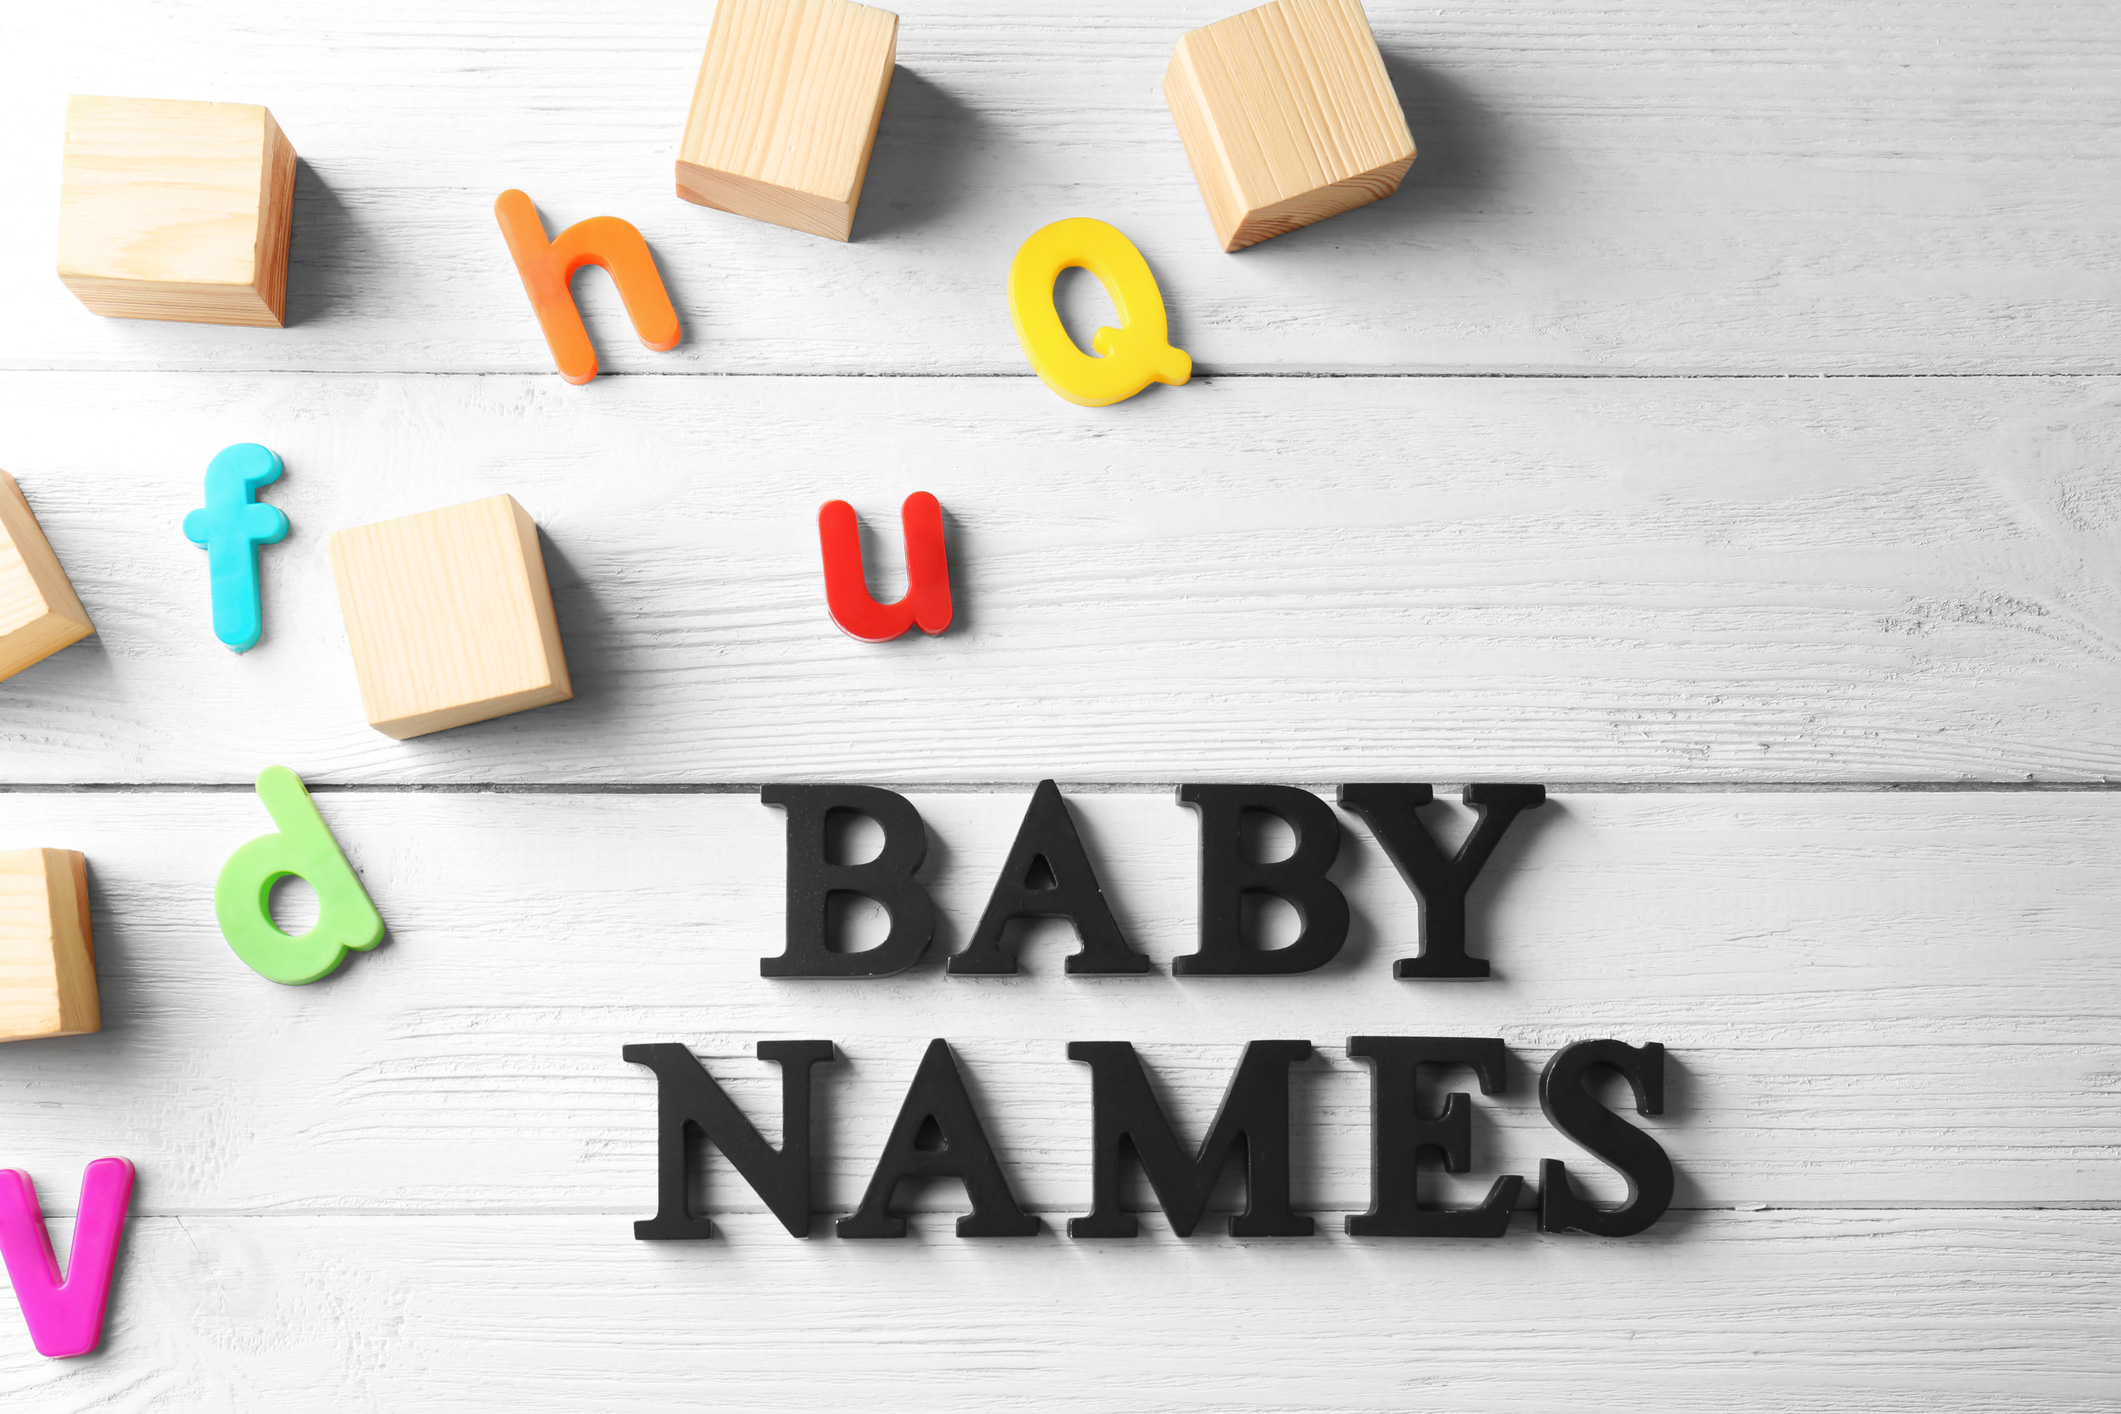 Italian Boy Name: Baby Name Trends: What's Hot And What's Not In 2018